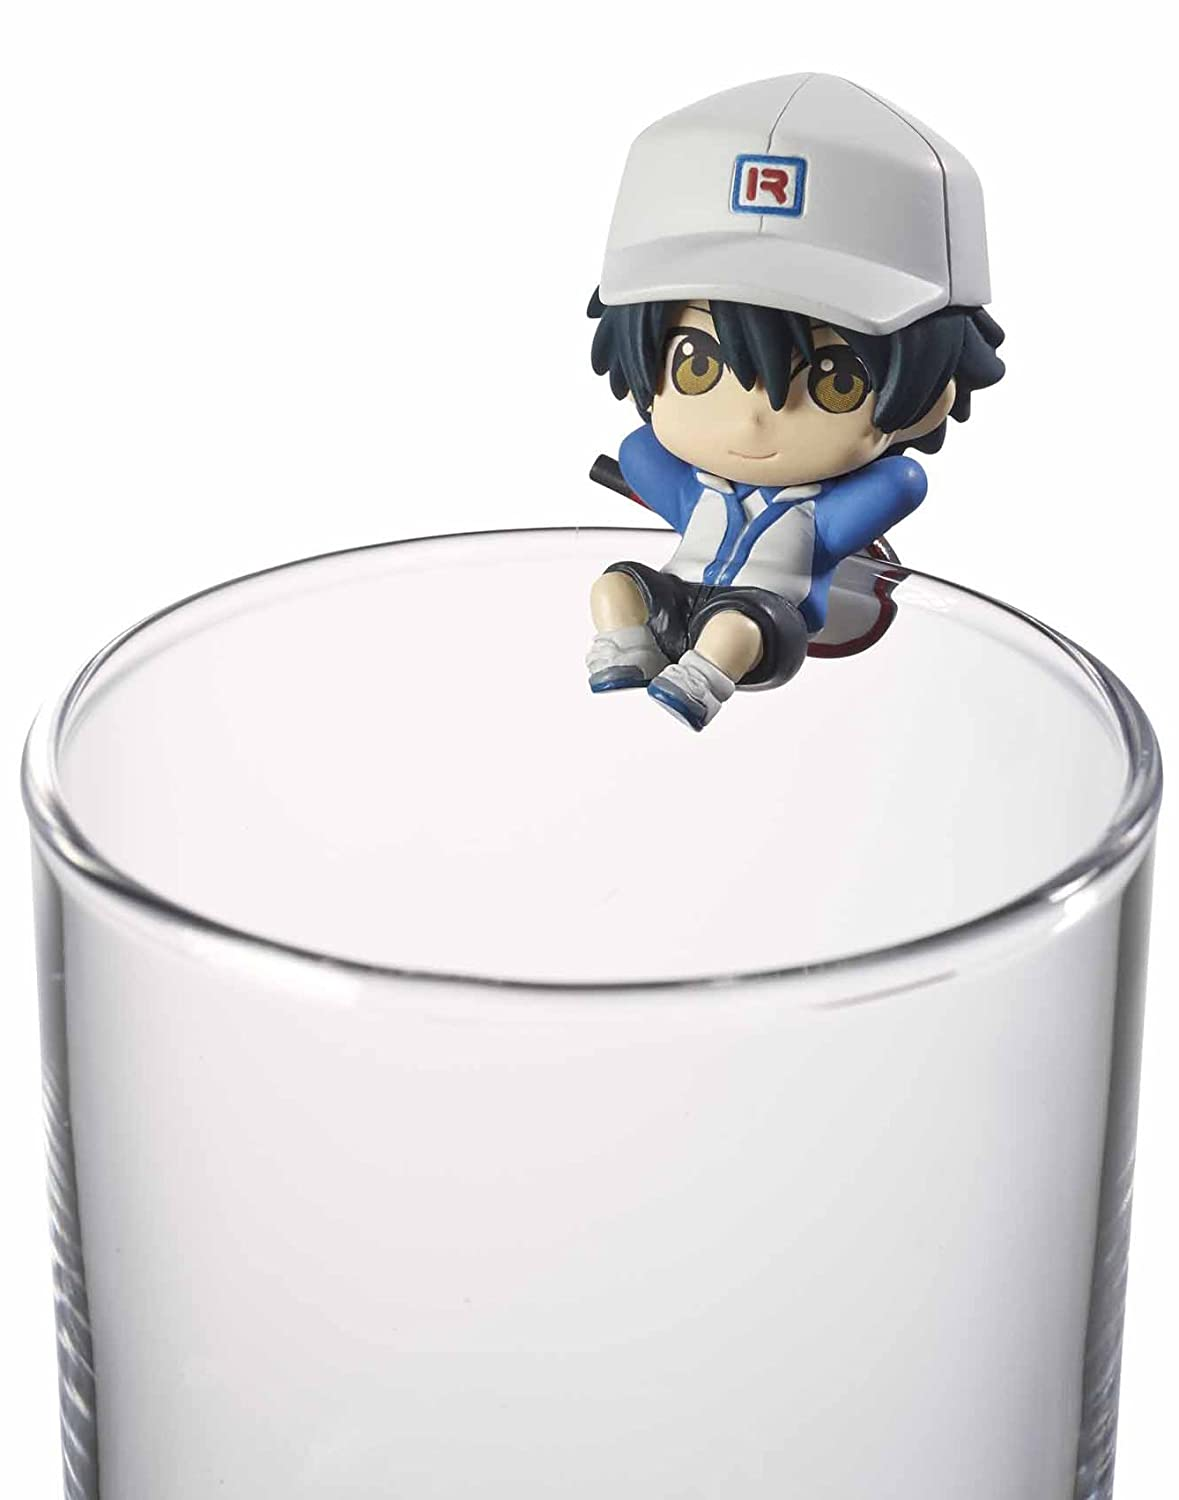 Ochatomo Serie New Prince of Tennis Prince of tea time (BOX) etwa 45 mm PVC-lackiert PVC Figure